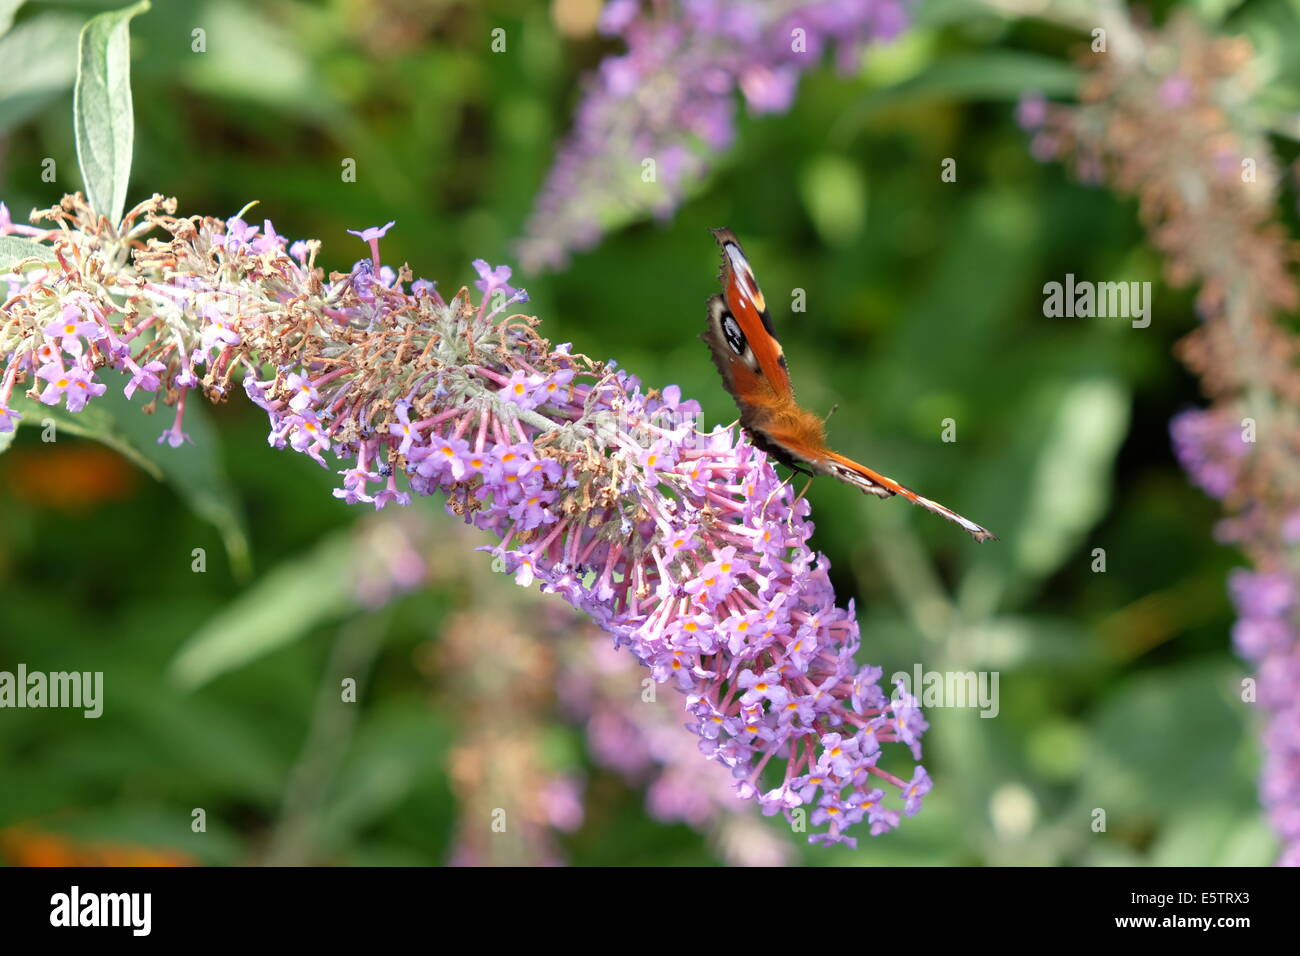 a red admiral butterfly feeding on nectar - Stock Image